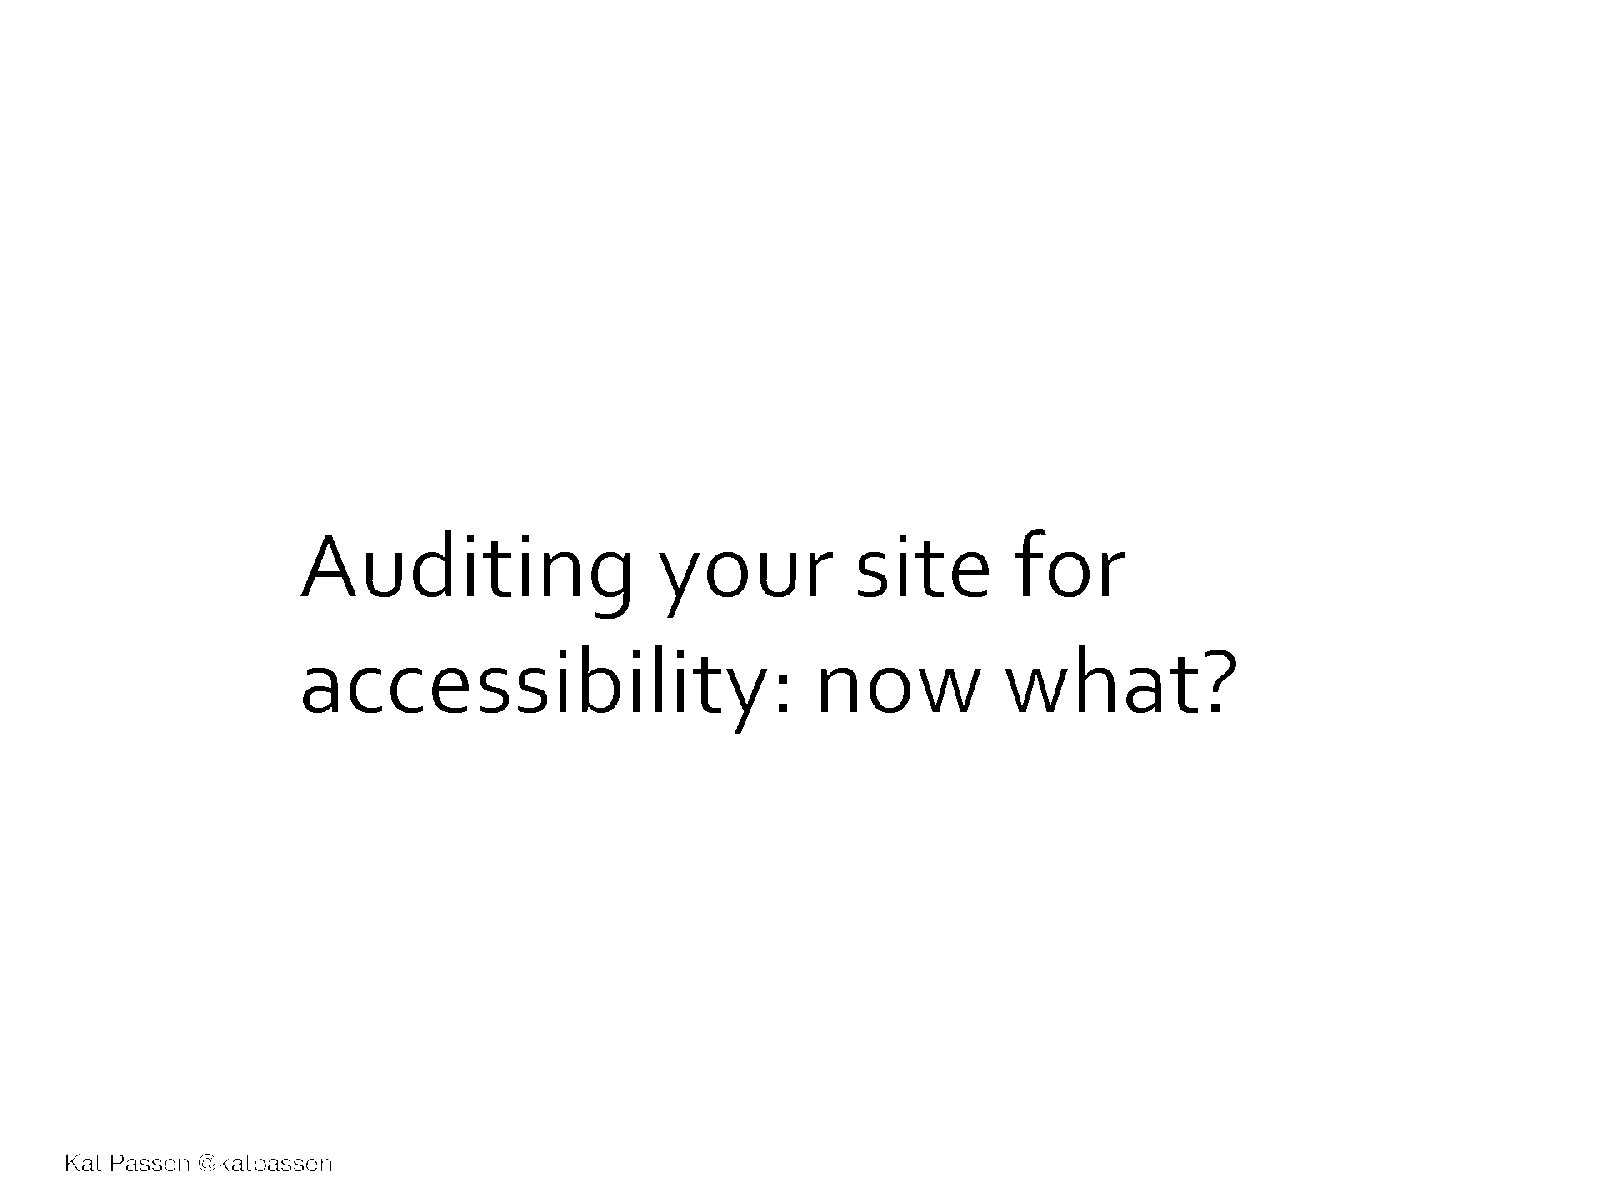 Auditing Your Site for Accessibility: Now What?